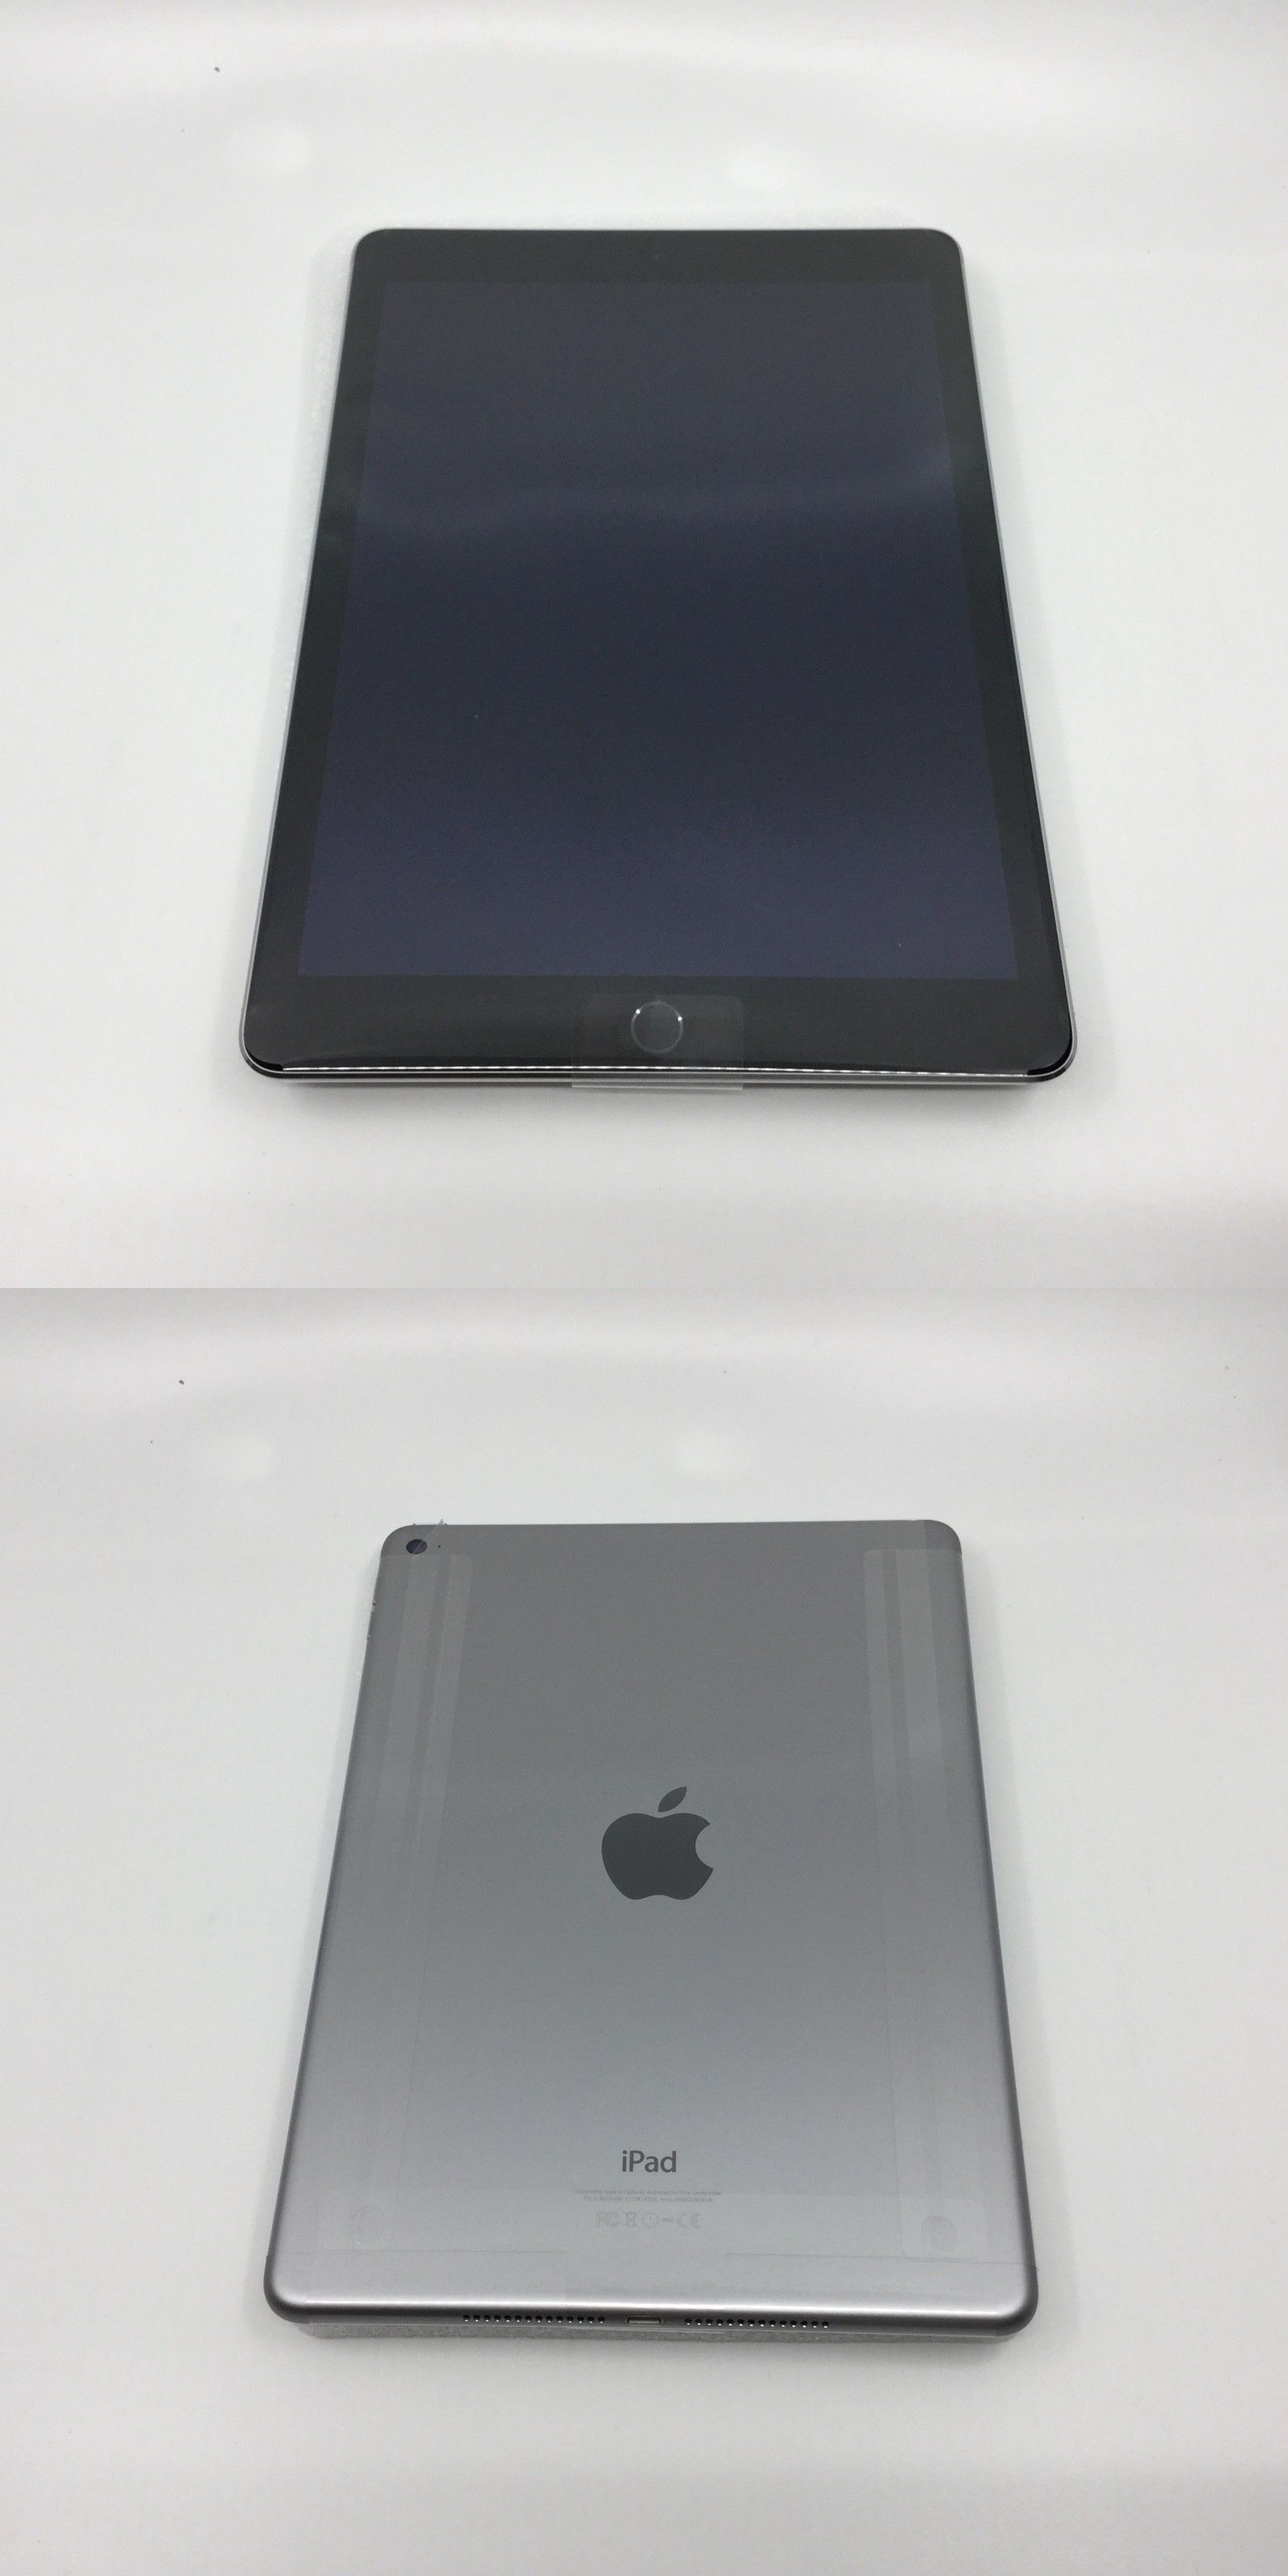 Apple iPad Box And Packaging Wi-Fi Space Gray 6th Generation